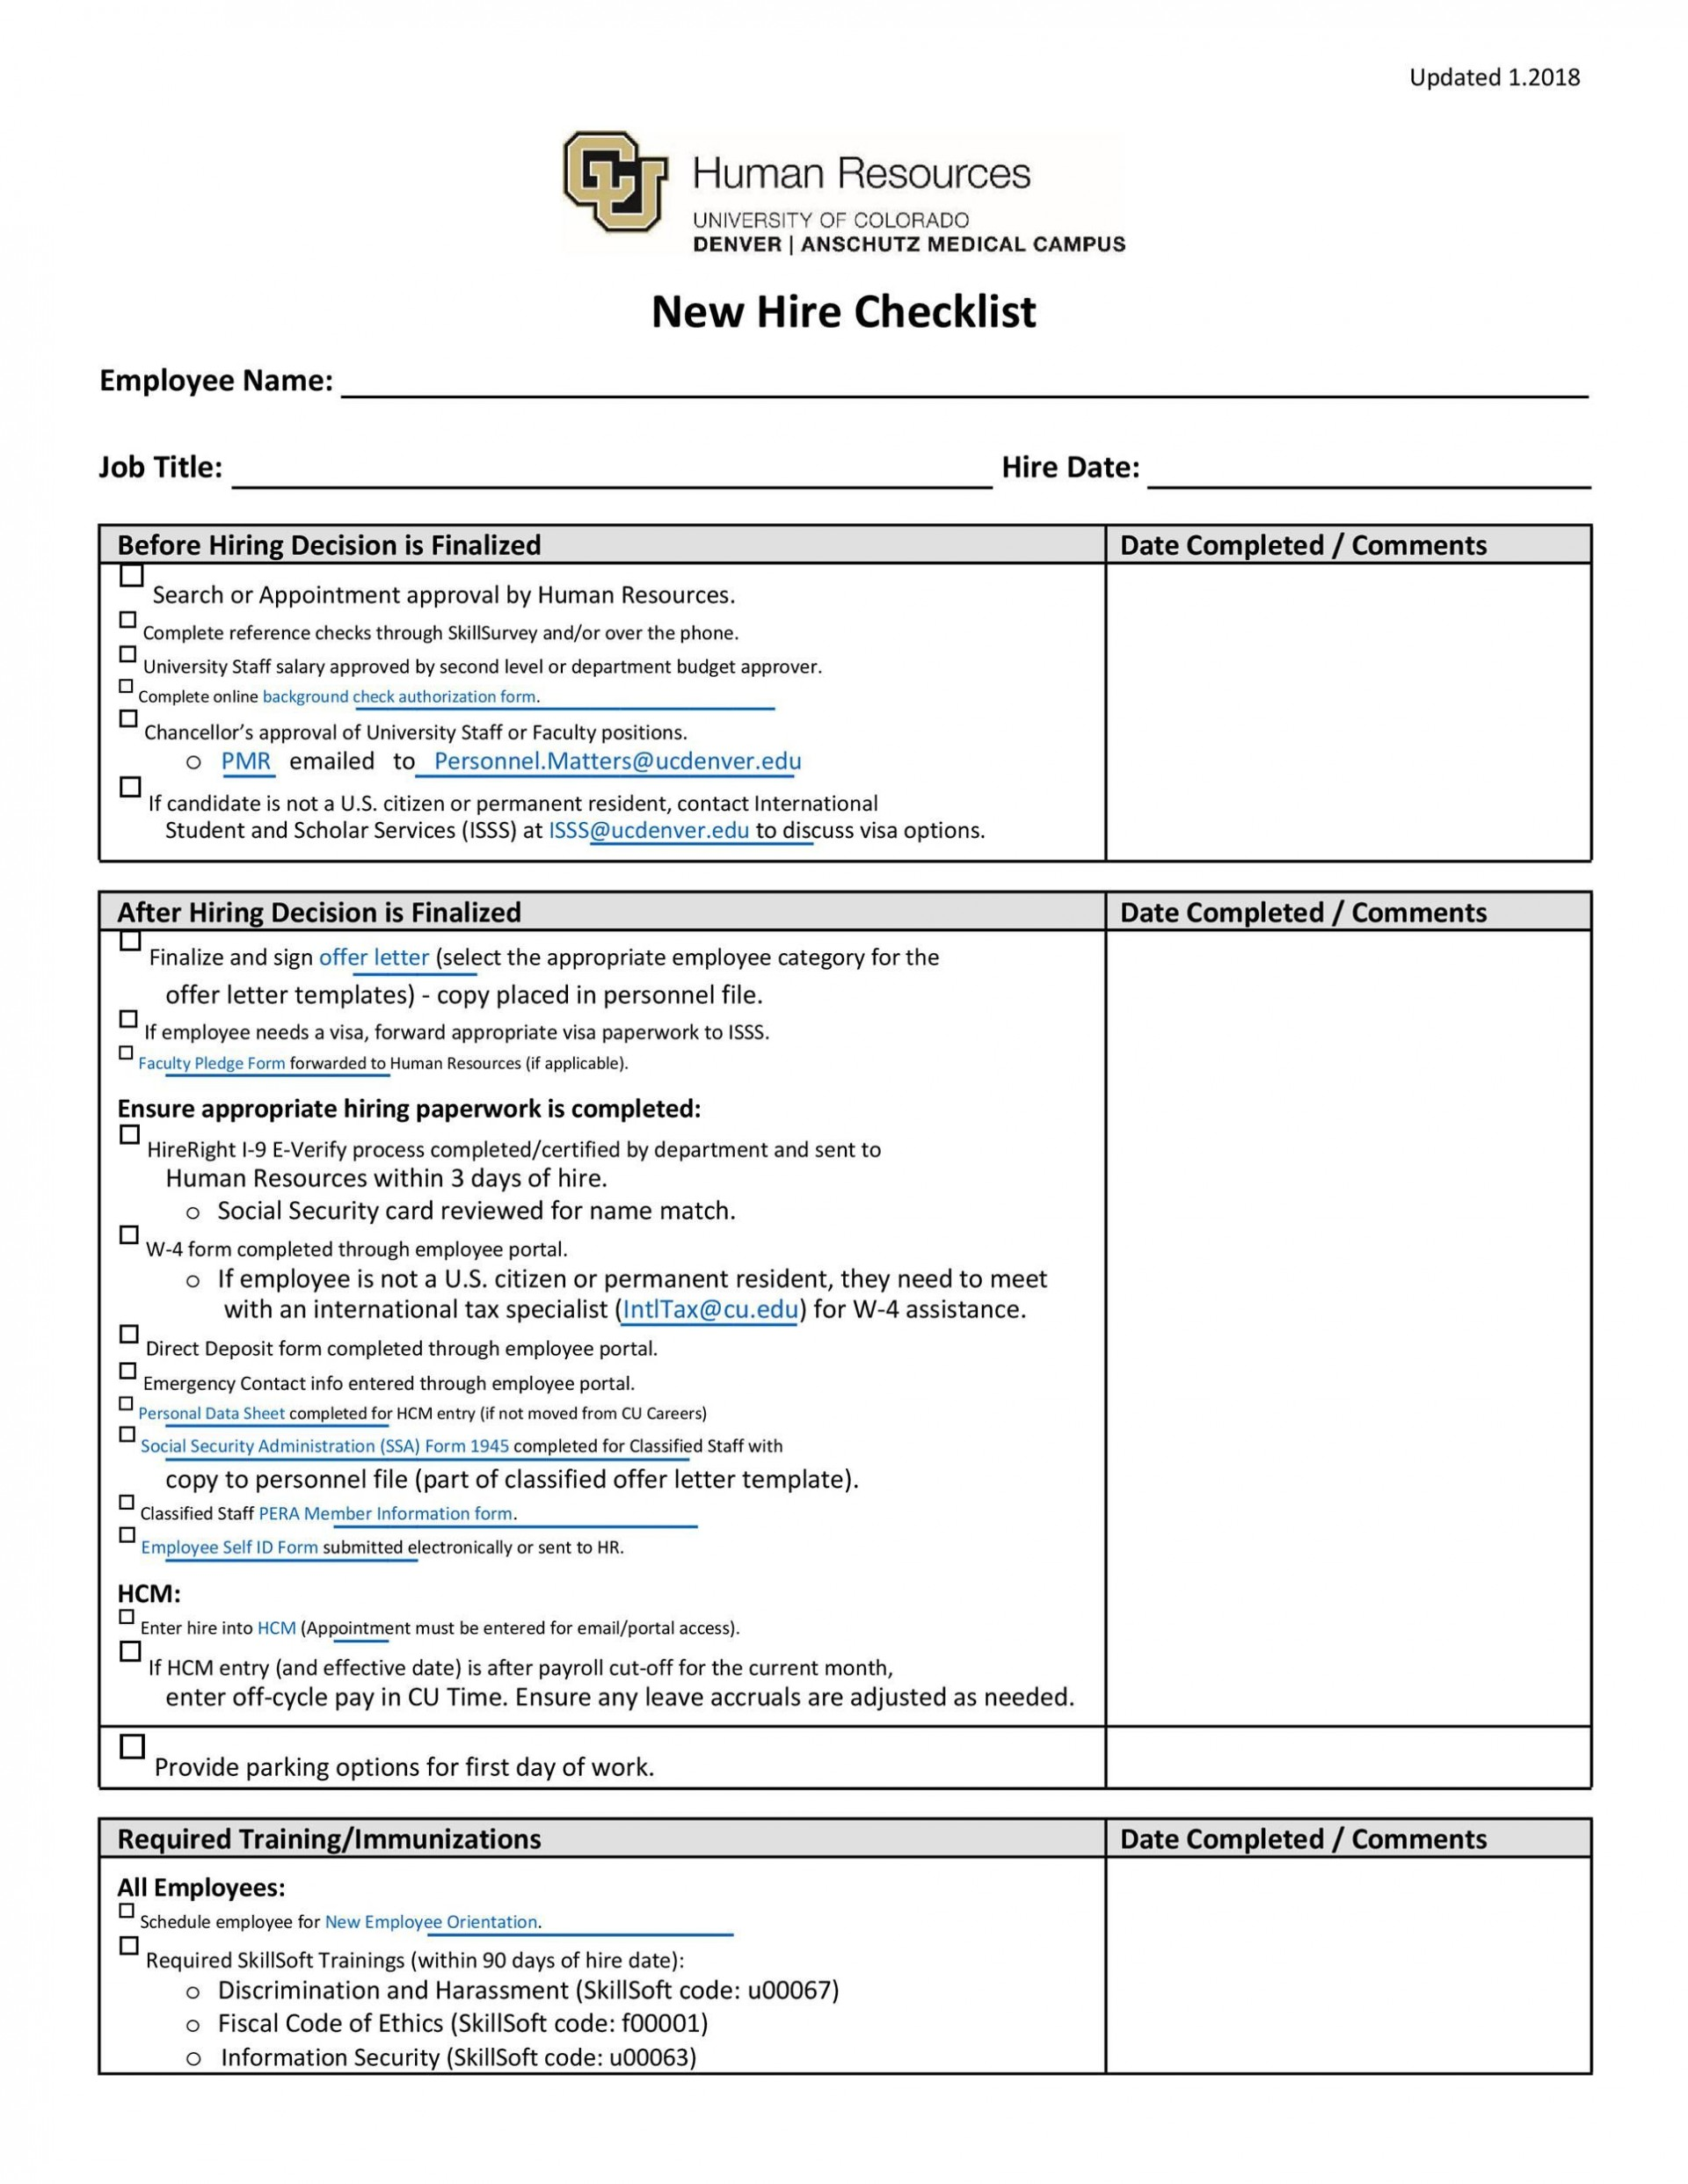 007 Amazing New Hire Checklist Template Sample  Employee Onboarding Excel Free Pdf1920